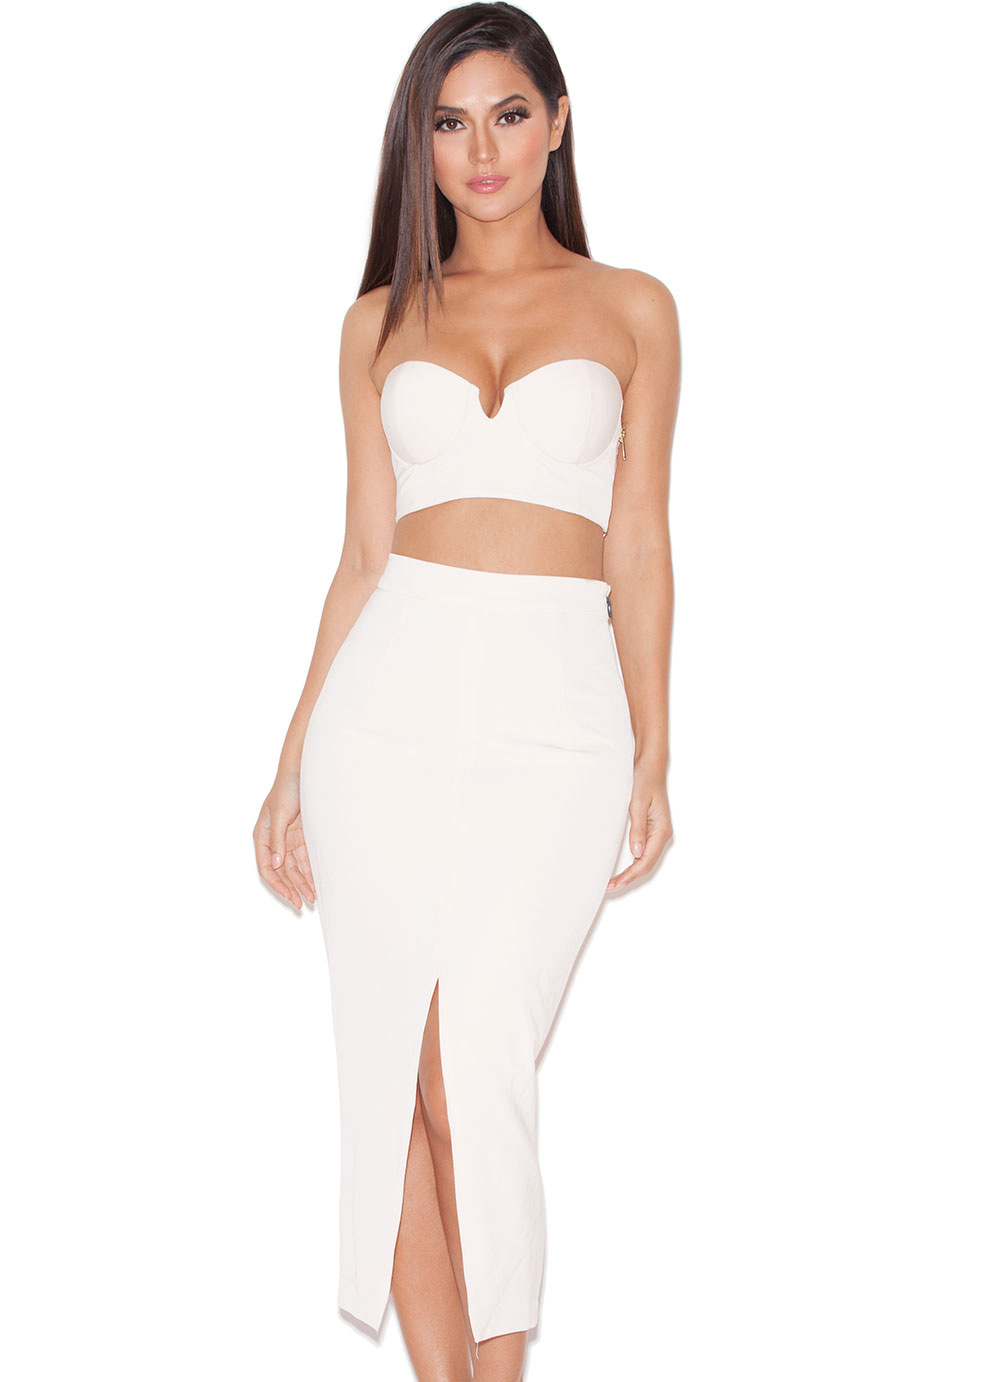 'Caspiana' Blush Crepe Bustier Two Piece